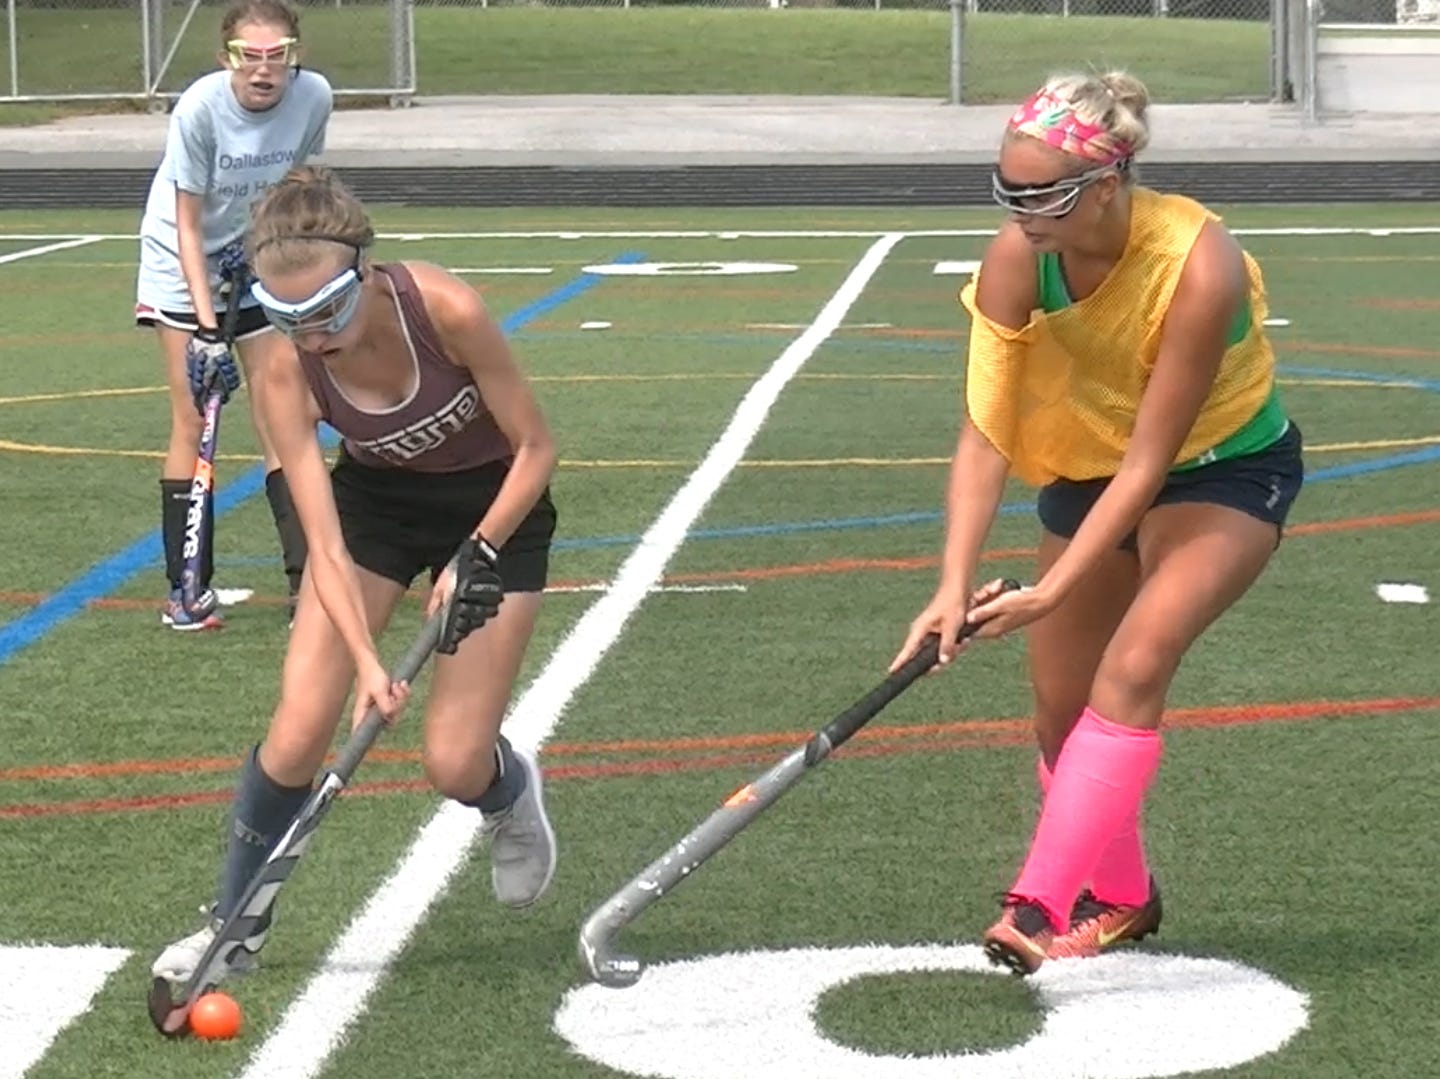 Members of Dallastown's field hockey team scrimmage during the first day of fall sports practice Monday, Aug. 13, 2018.